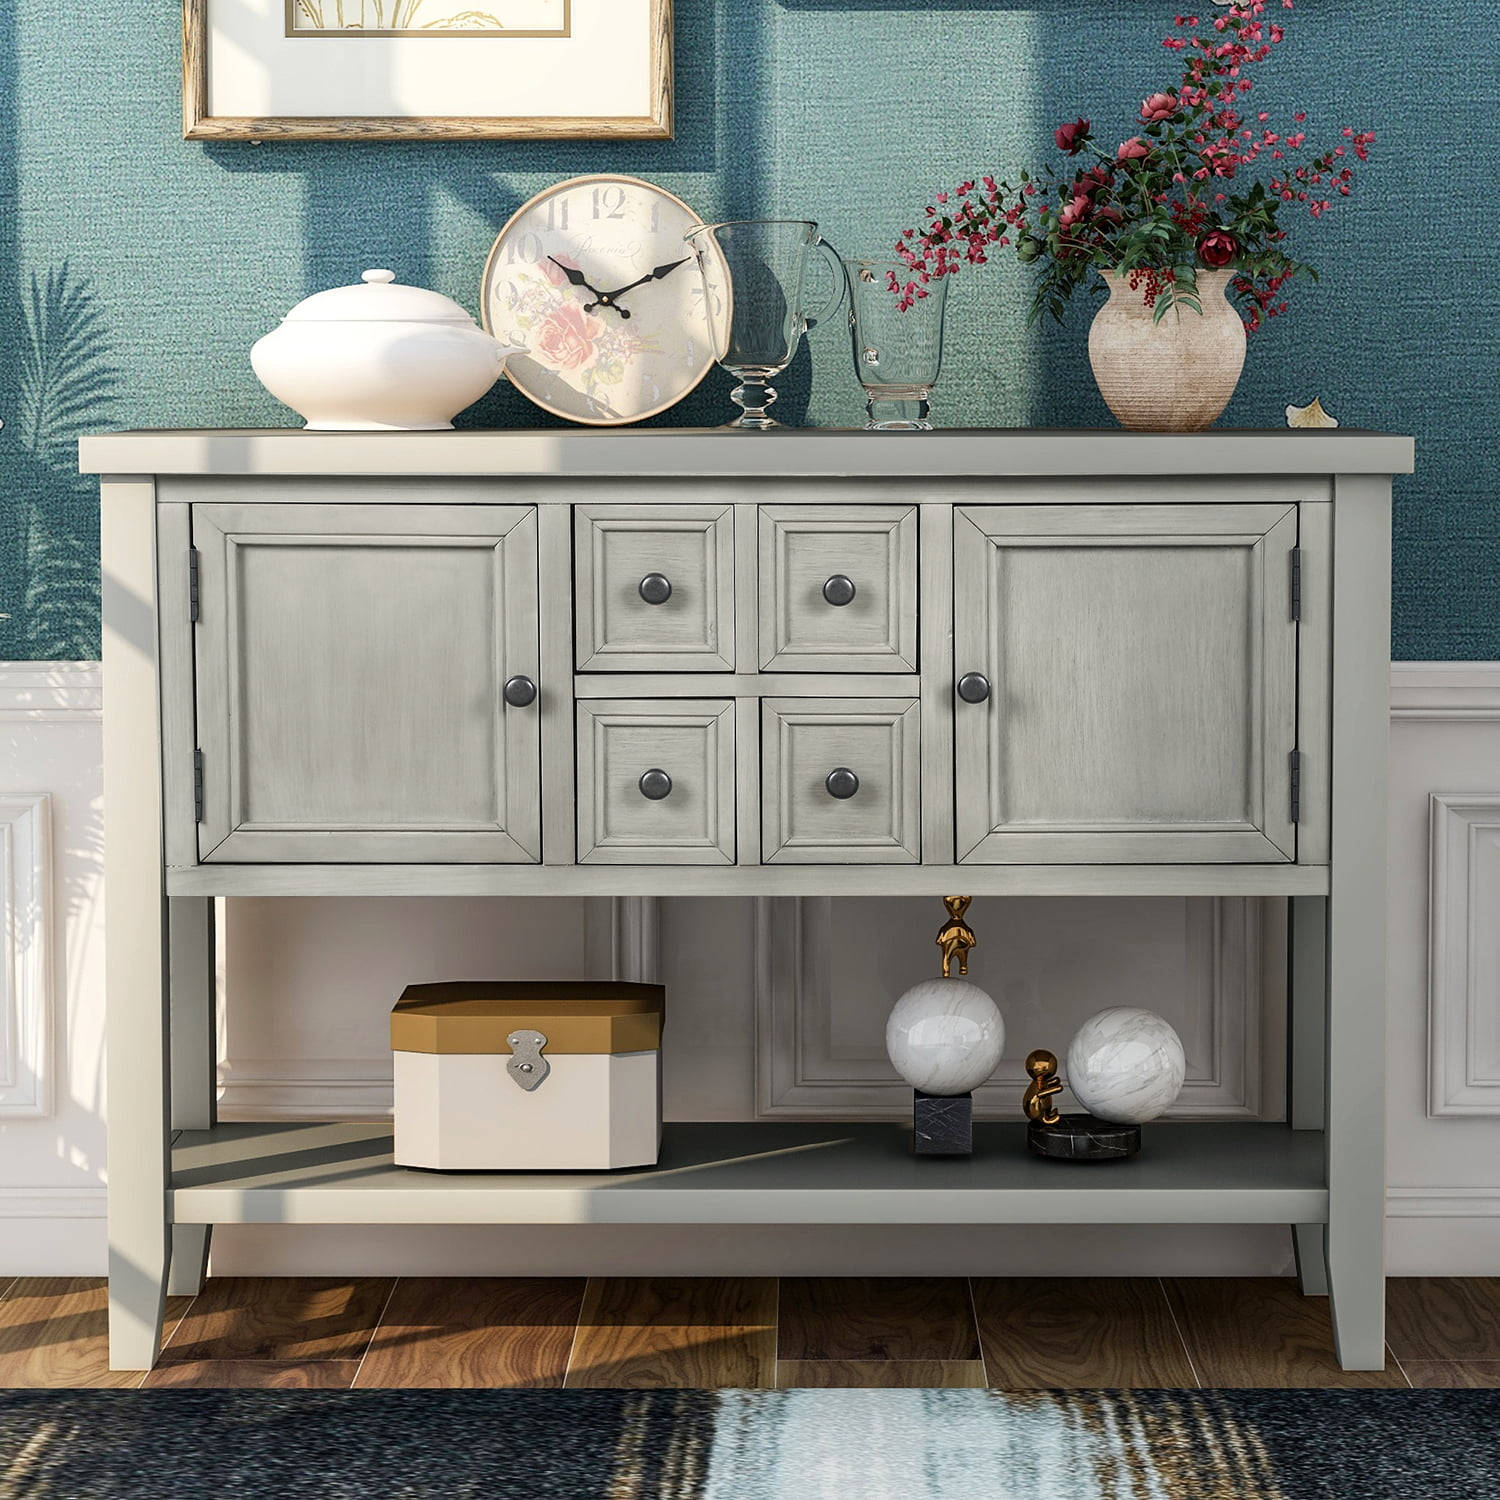 Picture of: Buffet Cabinet Sideboard 46 Dining Room Console Table W 4 Storage Drawers 2 Cabinets 1 Bottom Shelf Buffet Server Cabinet Kitchen Console Table Home Furniture Side Cabinet Antique Grey Q3687 Walmart Com Walmart Com